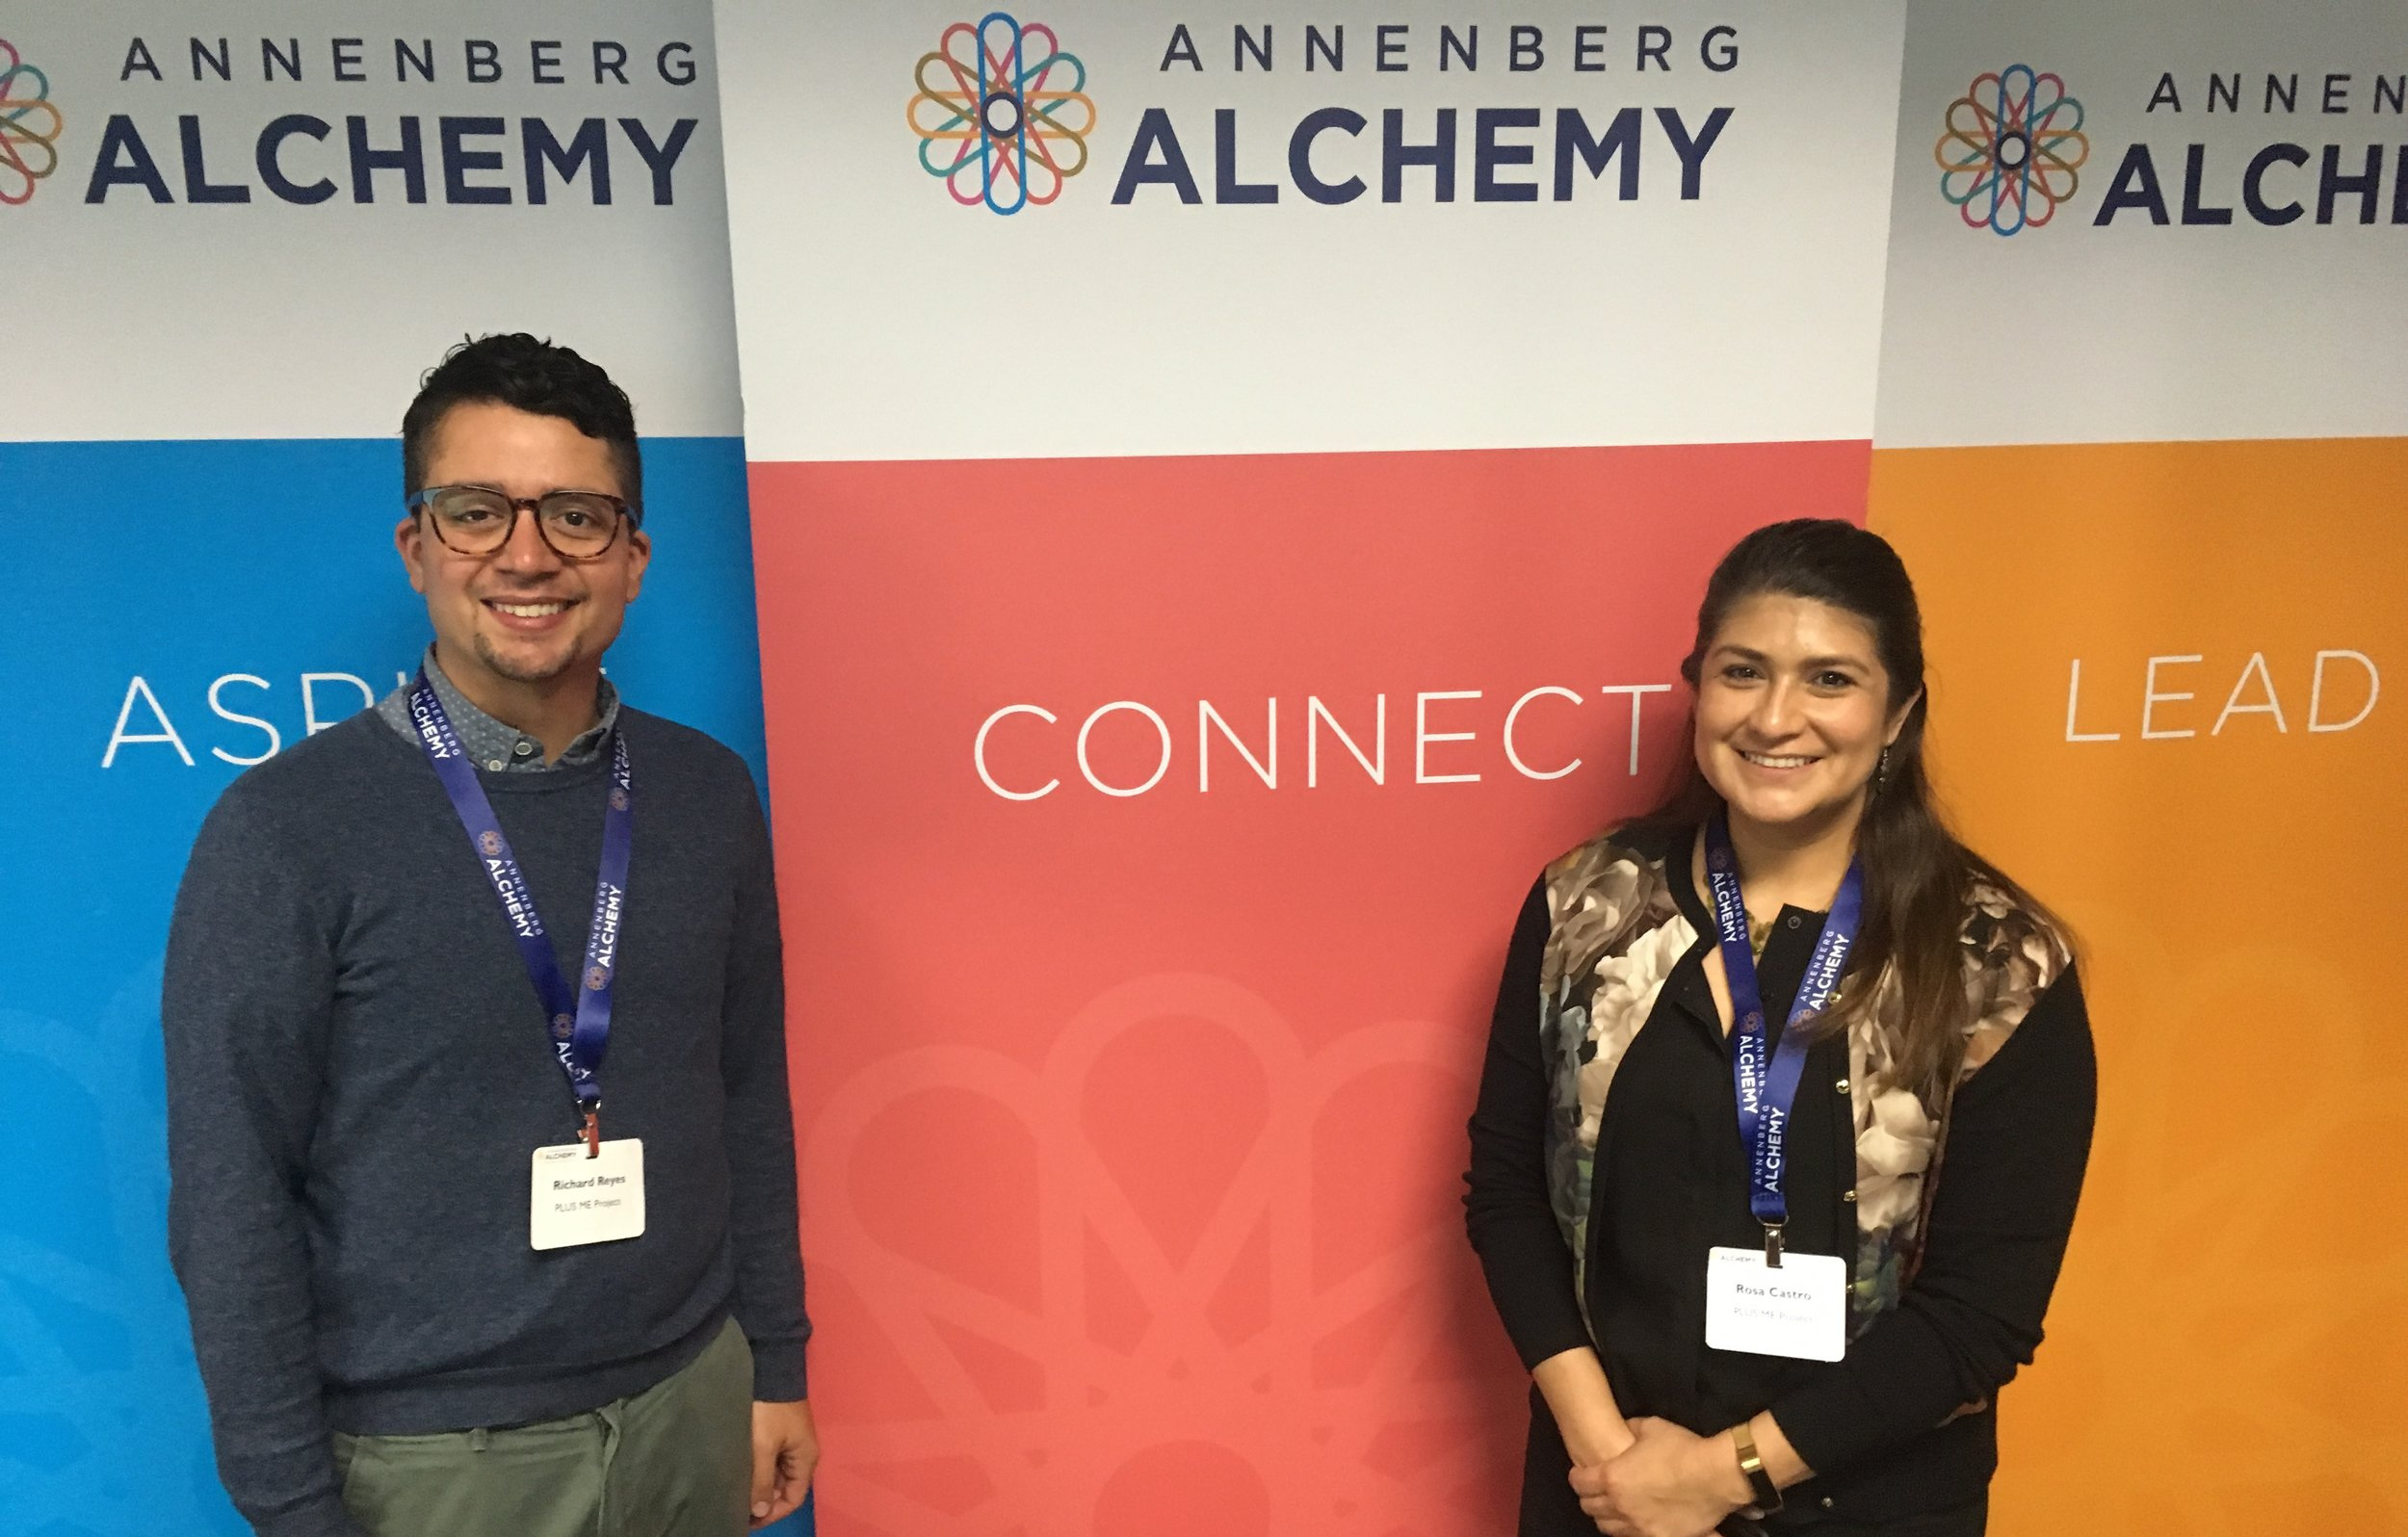 Board President Rosa Castro attended Annenberg Alchemy with our Executive Director, Richard Reyes